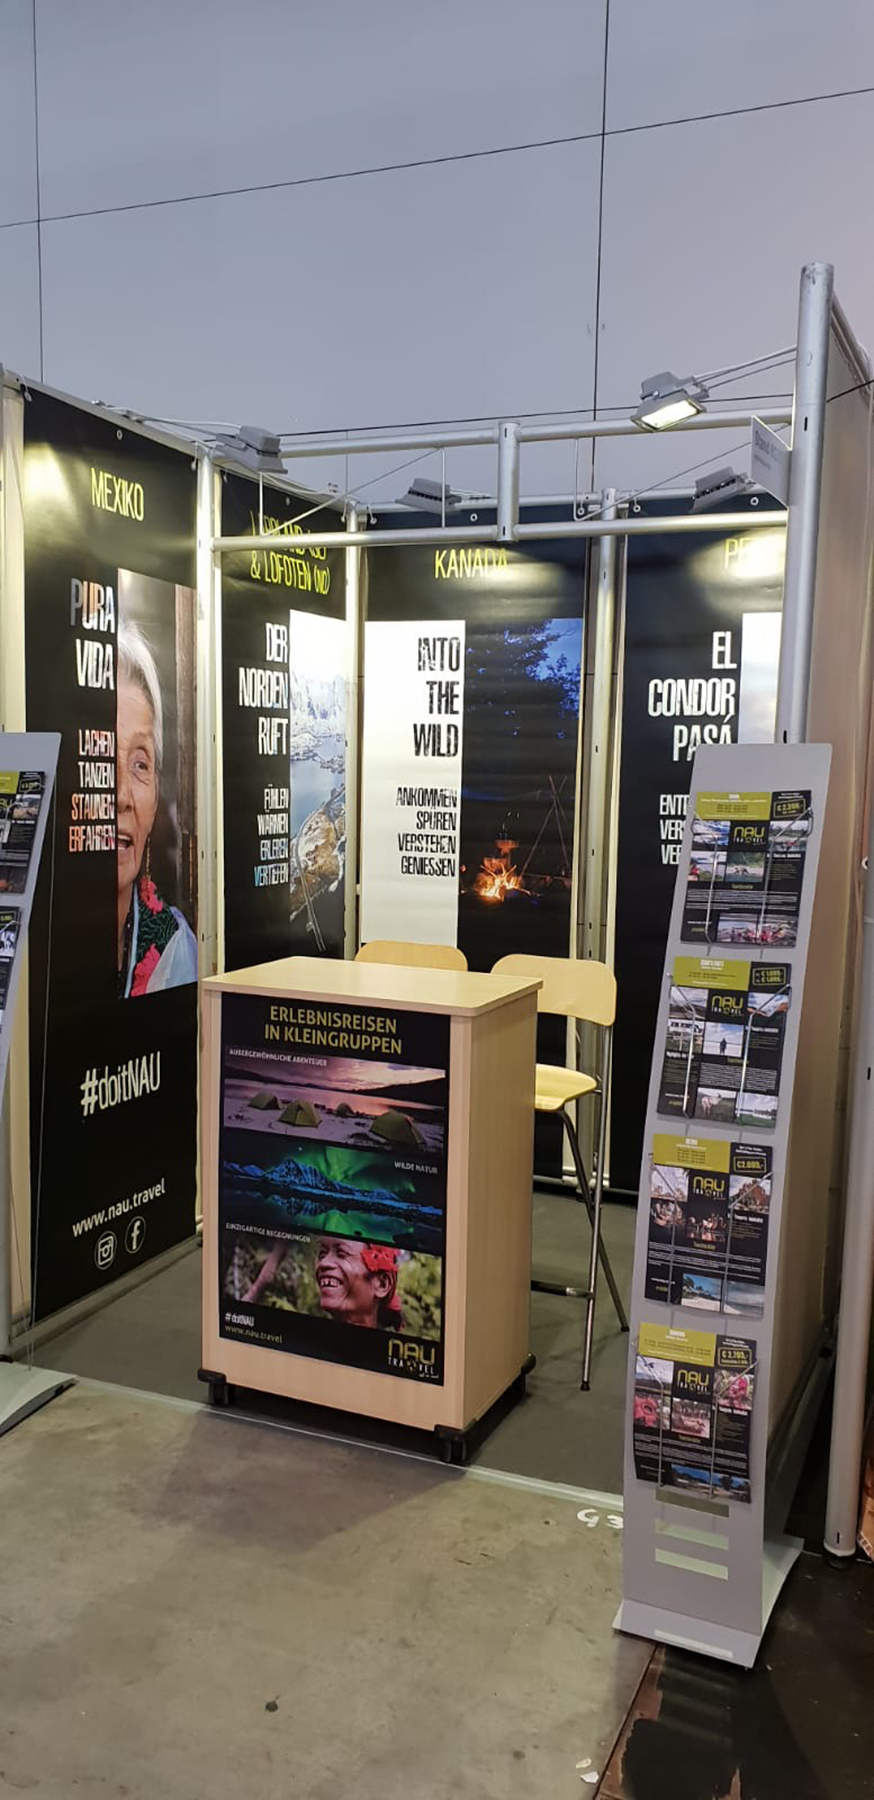 NAU Travel stand on the exhibition